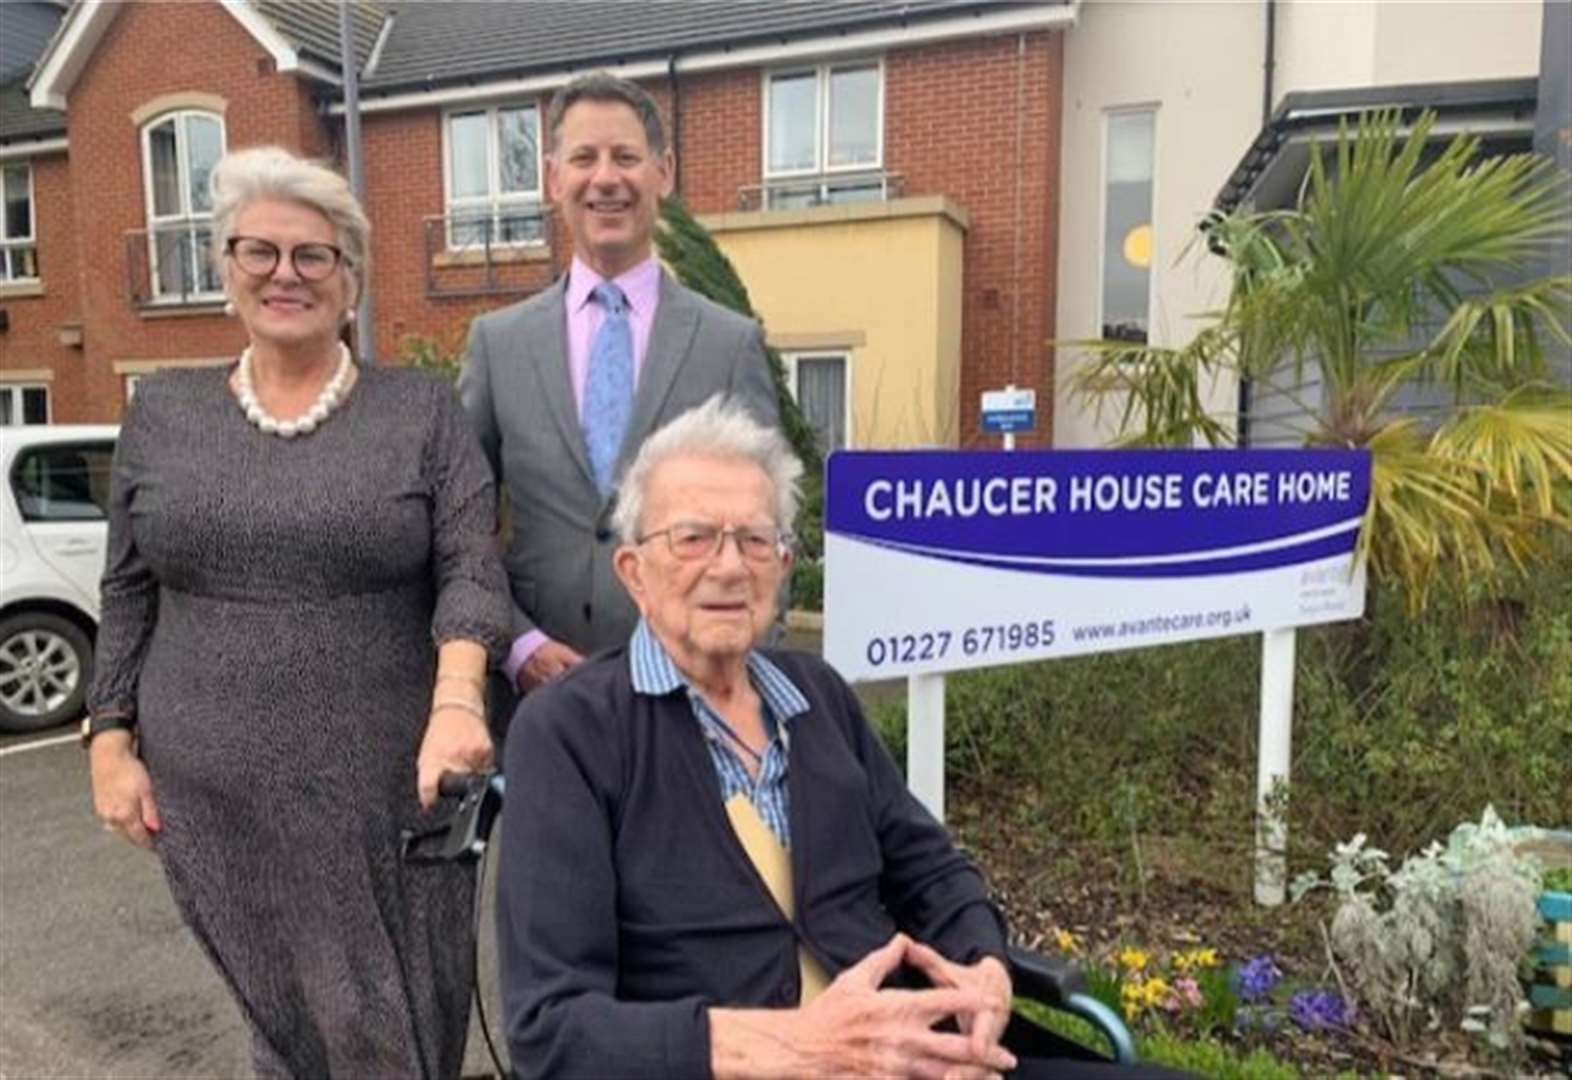 Care home acquired by 'popular' provider